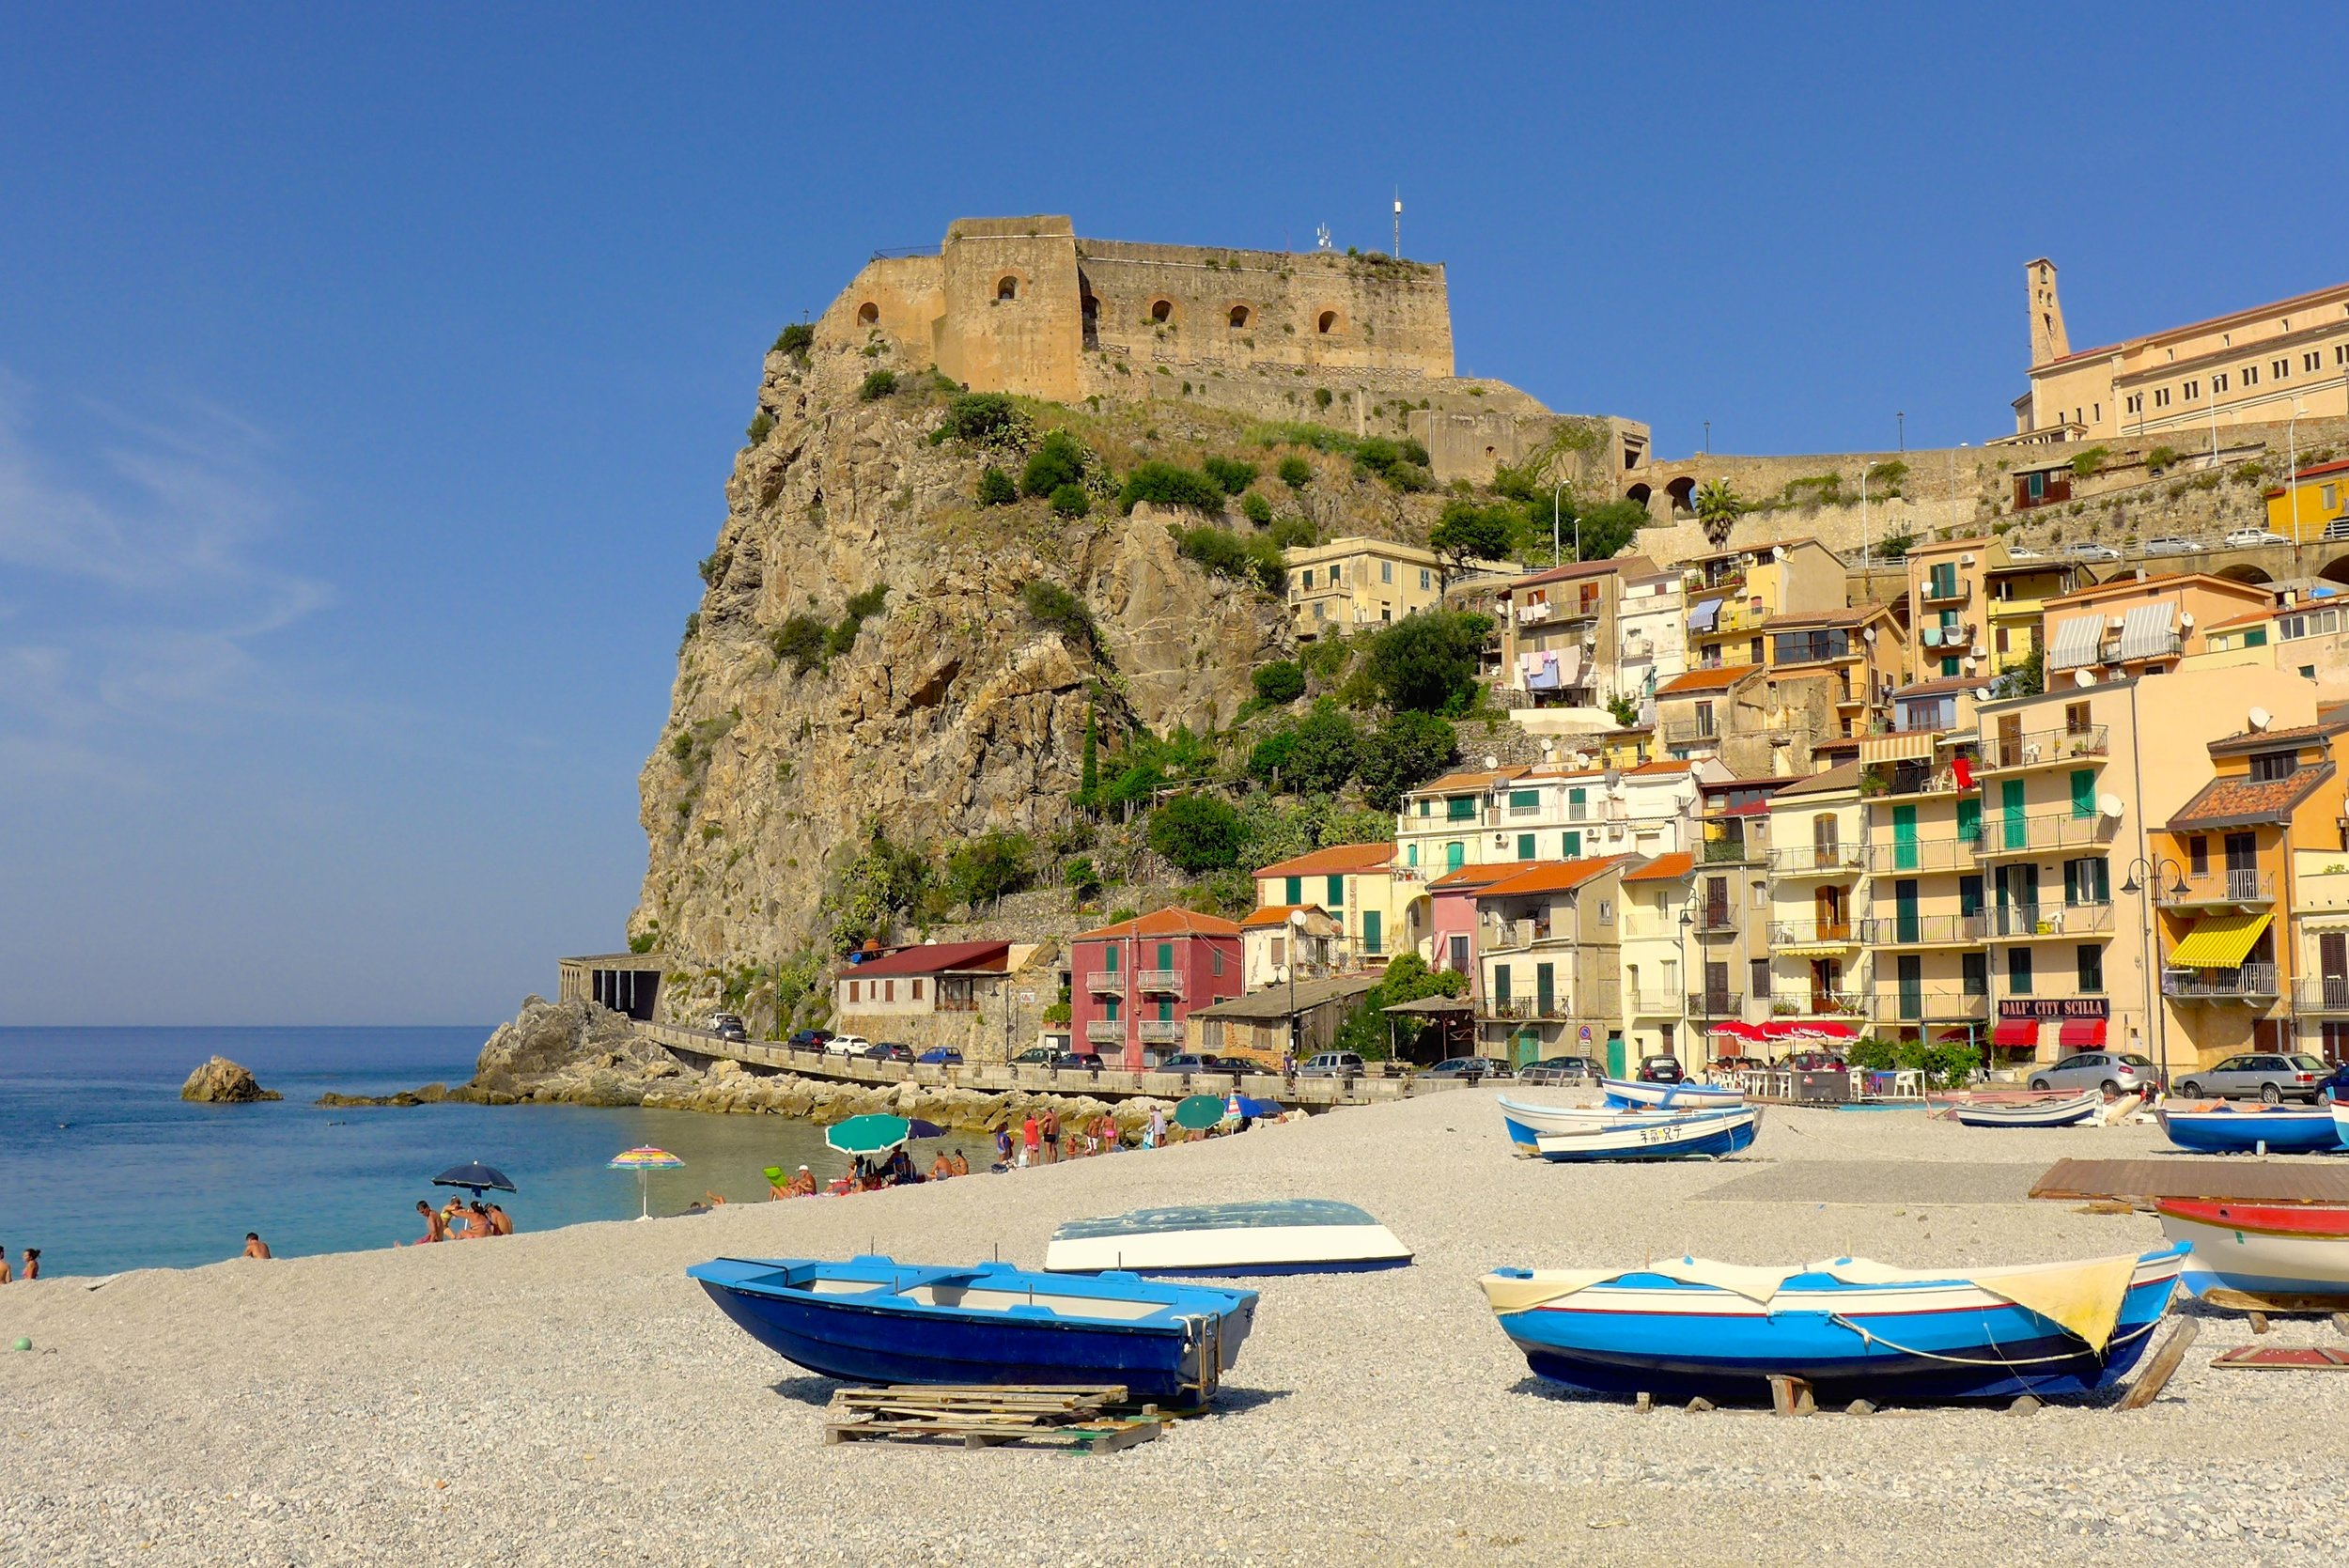 Fall in love with Calabria on your next holiday.